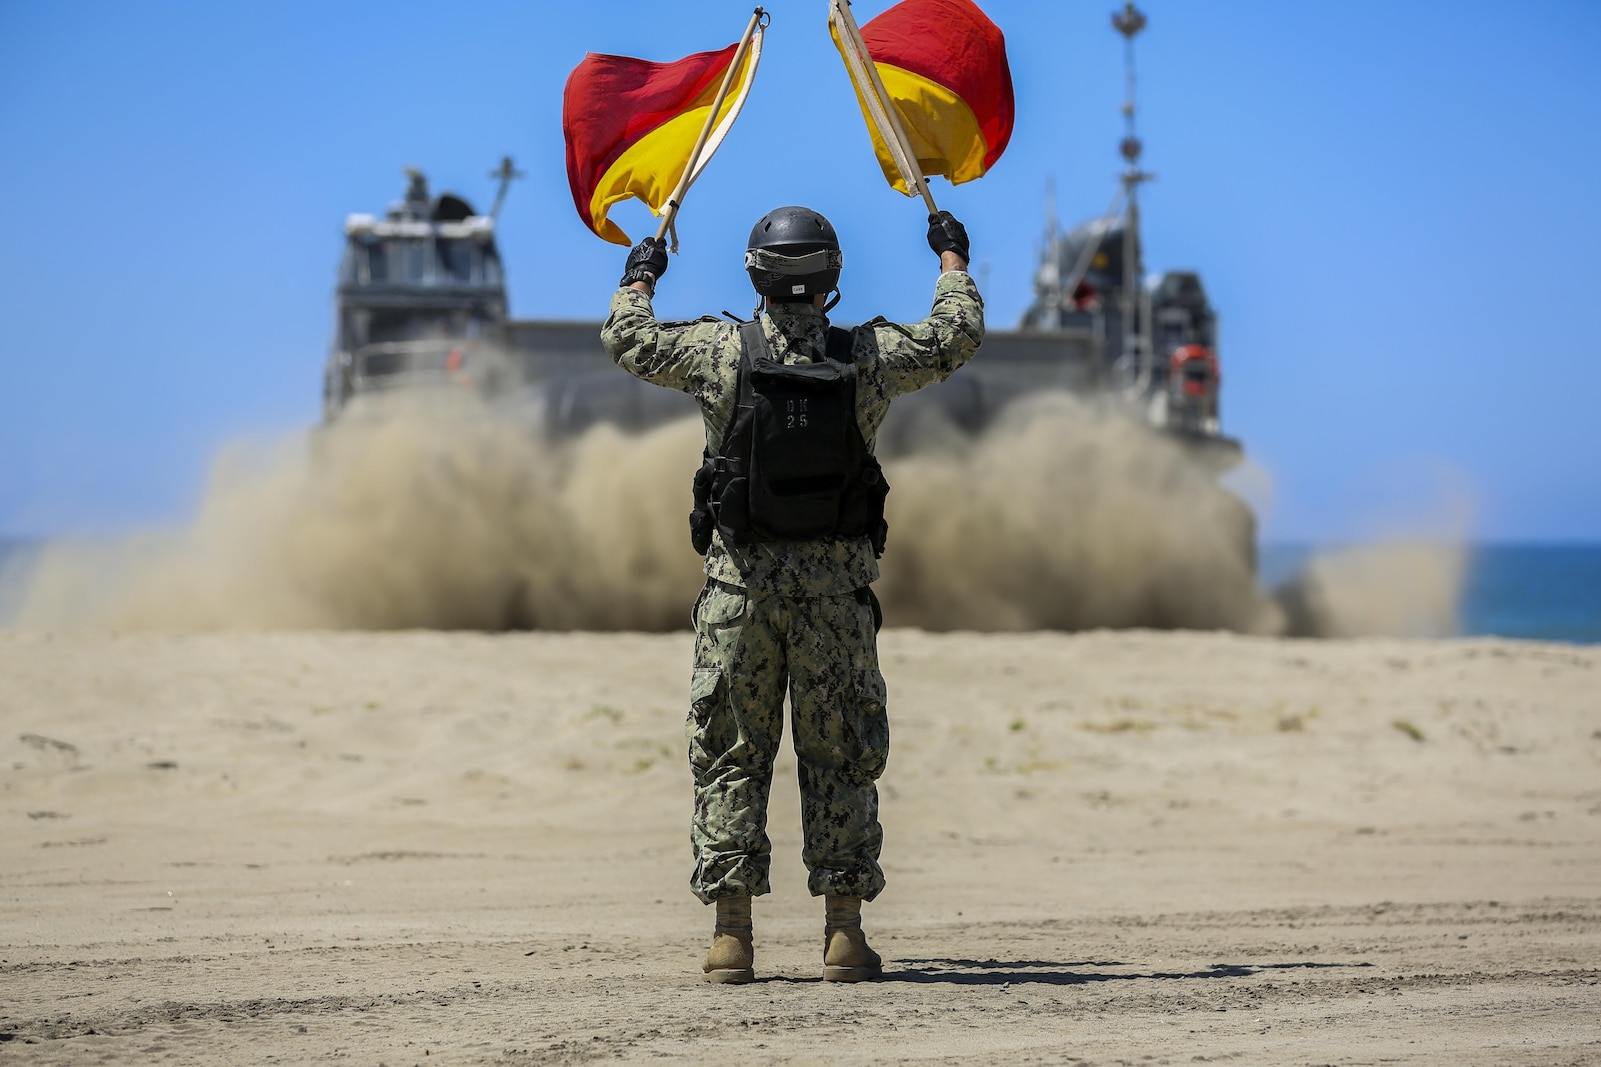 U.S. Navy Landing Craft Air Cushioned (LCAC) vehicle from Assault Craft Unit 5 is guided off of Red Beach as part of a training exercise alongside Bulk Fuel Company, 7th Engineer Support Battalion aboard Camp Pendleton, Calif., April 27, 2015. This exercise reinforces the Marine Corps role as an amphibious force in readiness by maintaining capabilities through realistic training.(U.S. Marine Corps photo by Lance Cpl. Lauren Falk/Released)